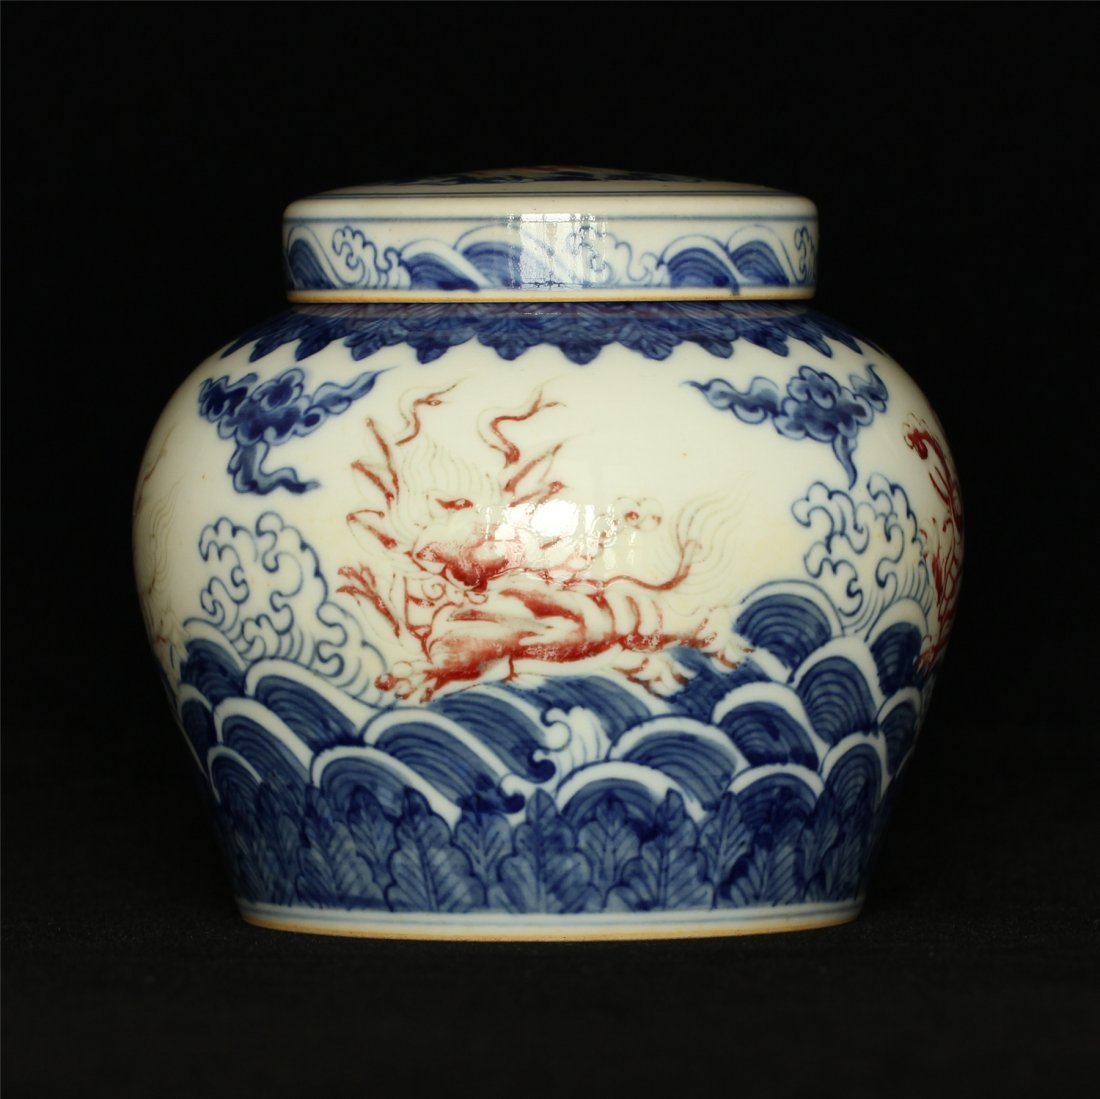 Blue and white & underglaze red porcelain jar of Tian